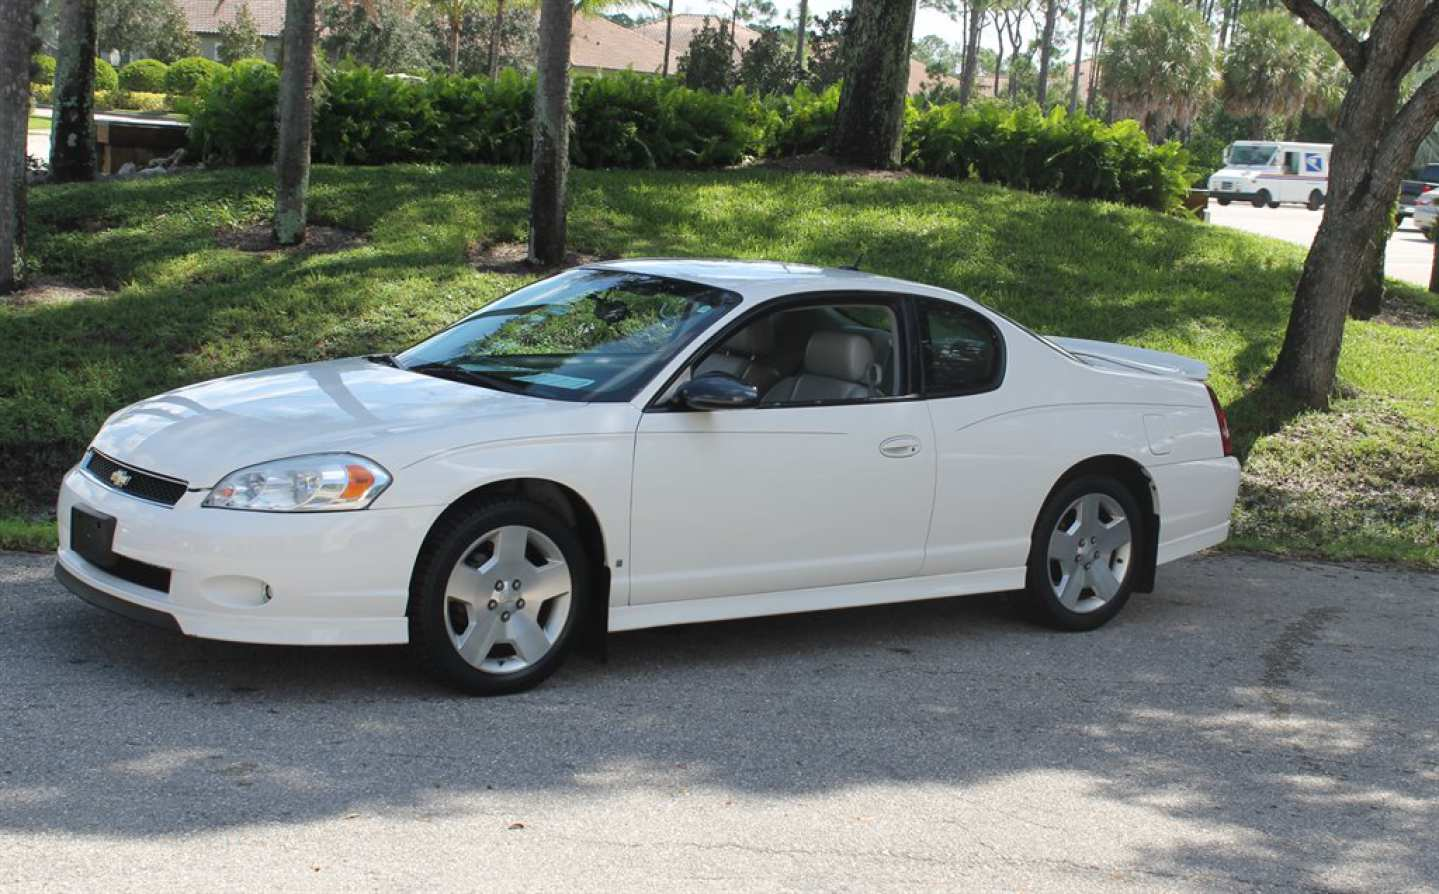 2007 Chevrolet Monte Carlo Ss For Sale At Vicari Auctions Biloxi 2018